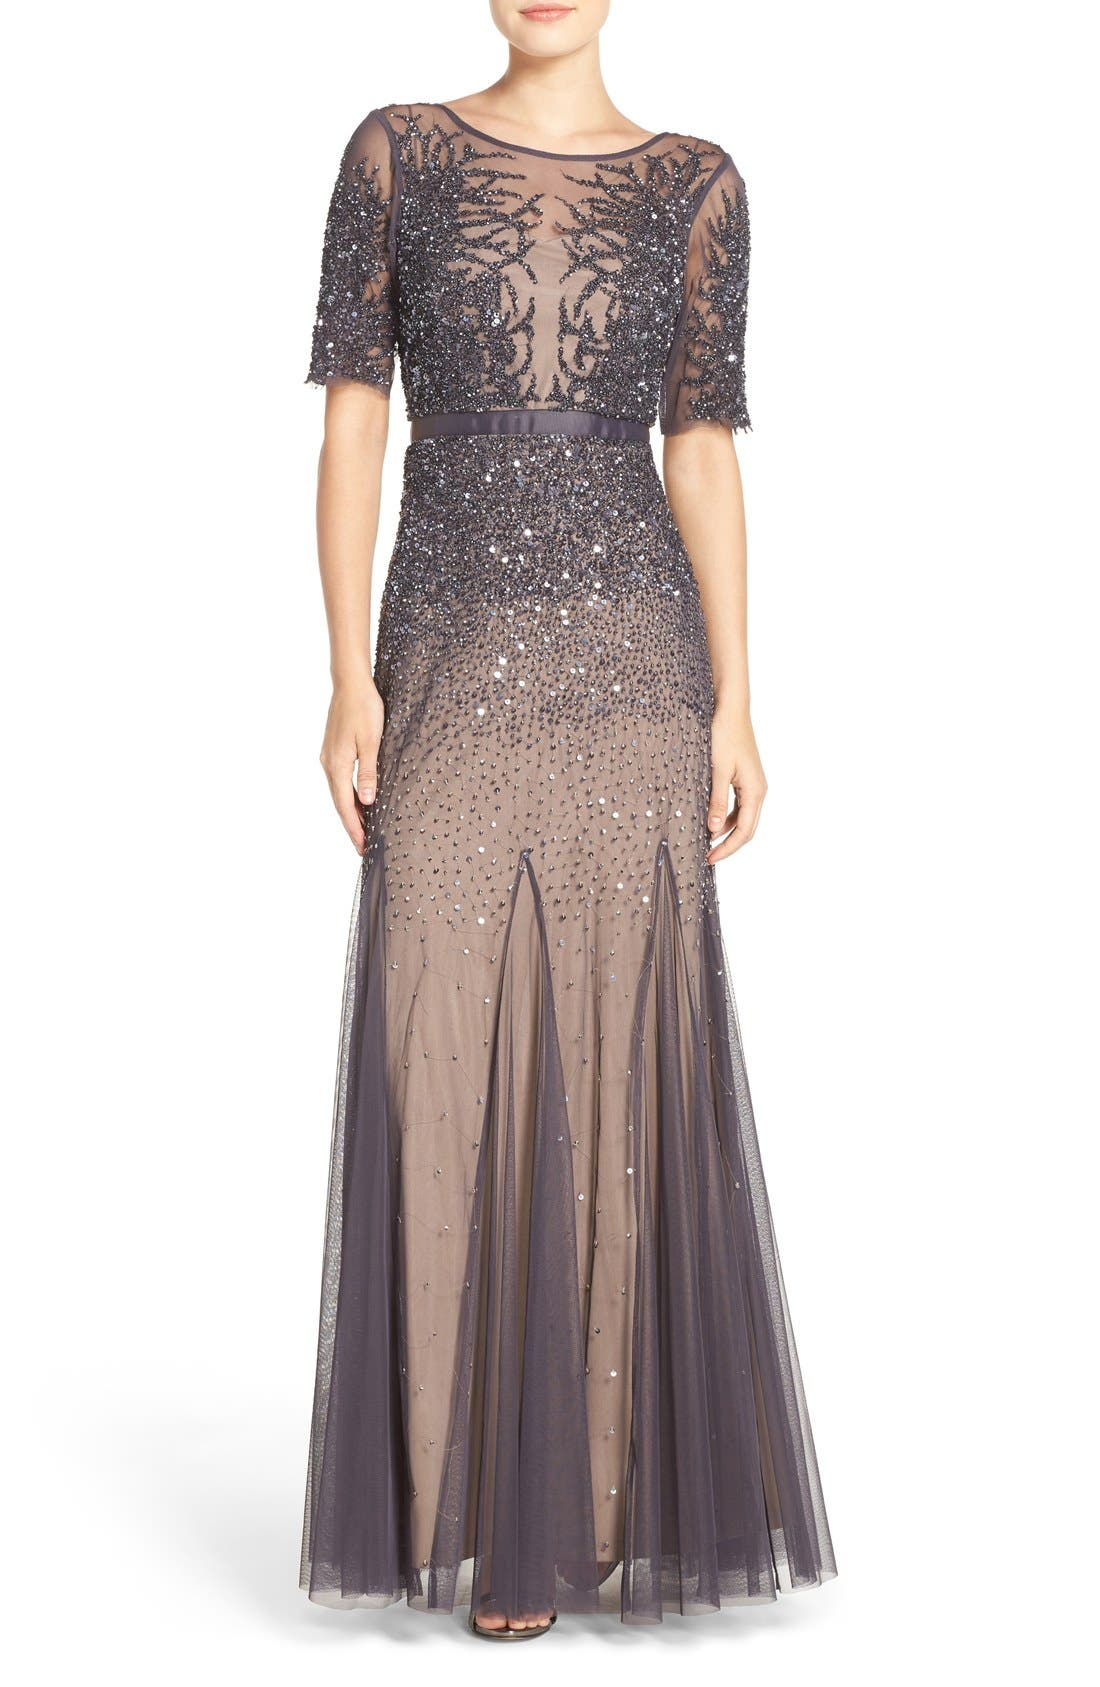 Main Image - Adrianna Papell Embellished Mesh Mermaid Gown